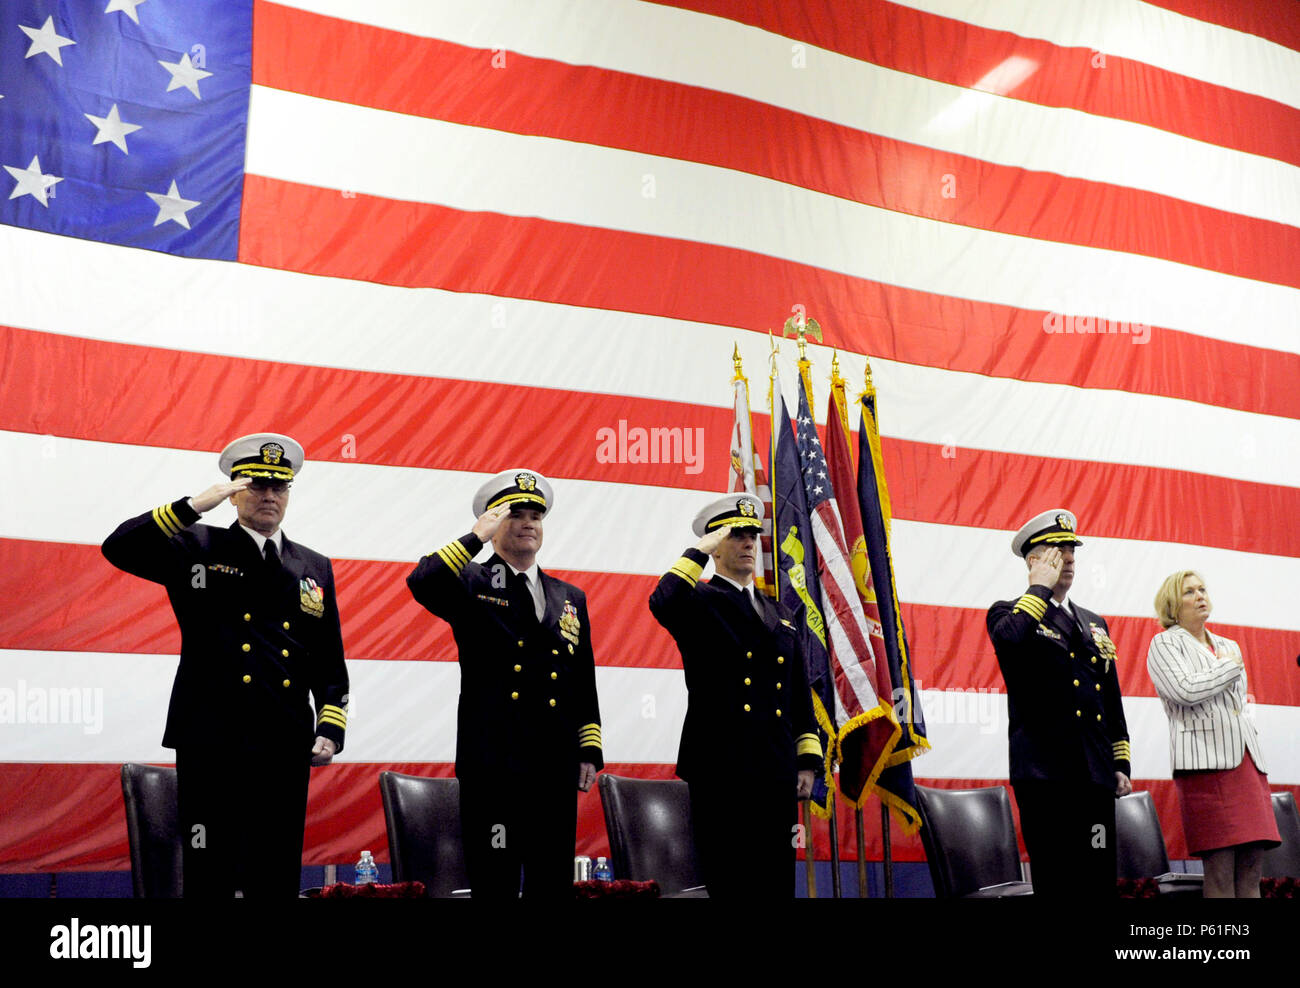 NEWPORT NEWS, Va., (April 8, 2016) The official party honors the national anthem during a change of command ceremony in Pre-Commissioning Unit Gerald R. Ford's (CVN 78) hangar bay.  Ford is the first of a new class of aircraft carriers currently under construction by Huntington Ingalls Newport News Shipbuilding. (U.S. Navy photo by Mass Communication Specialist Seaman Cathrine Mae O. Campbell/Released) - Stock Image